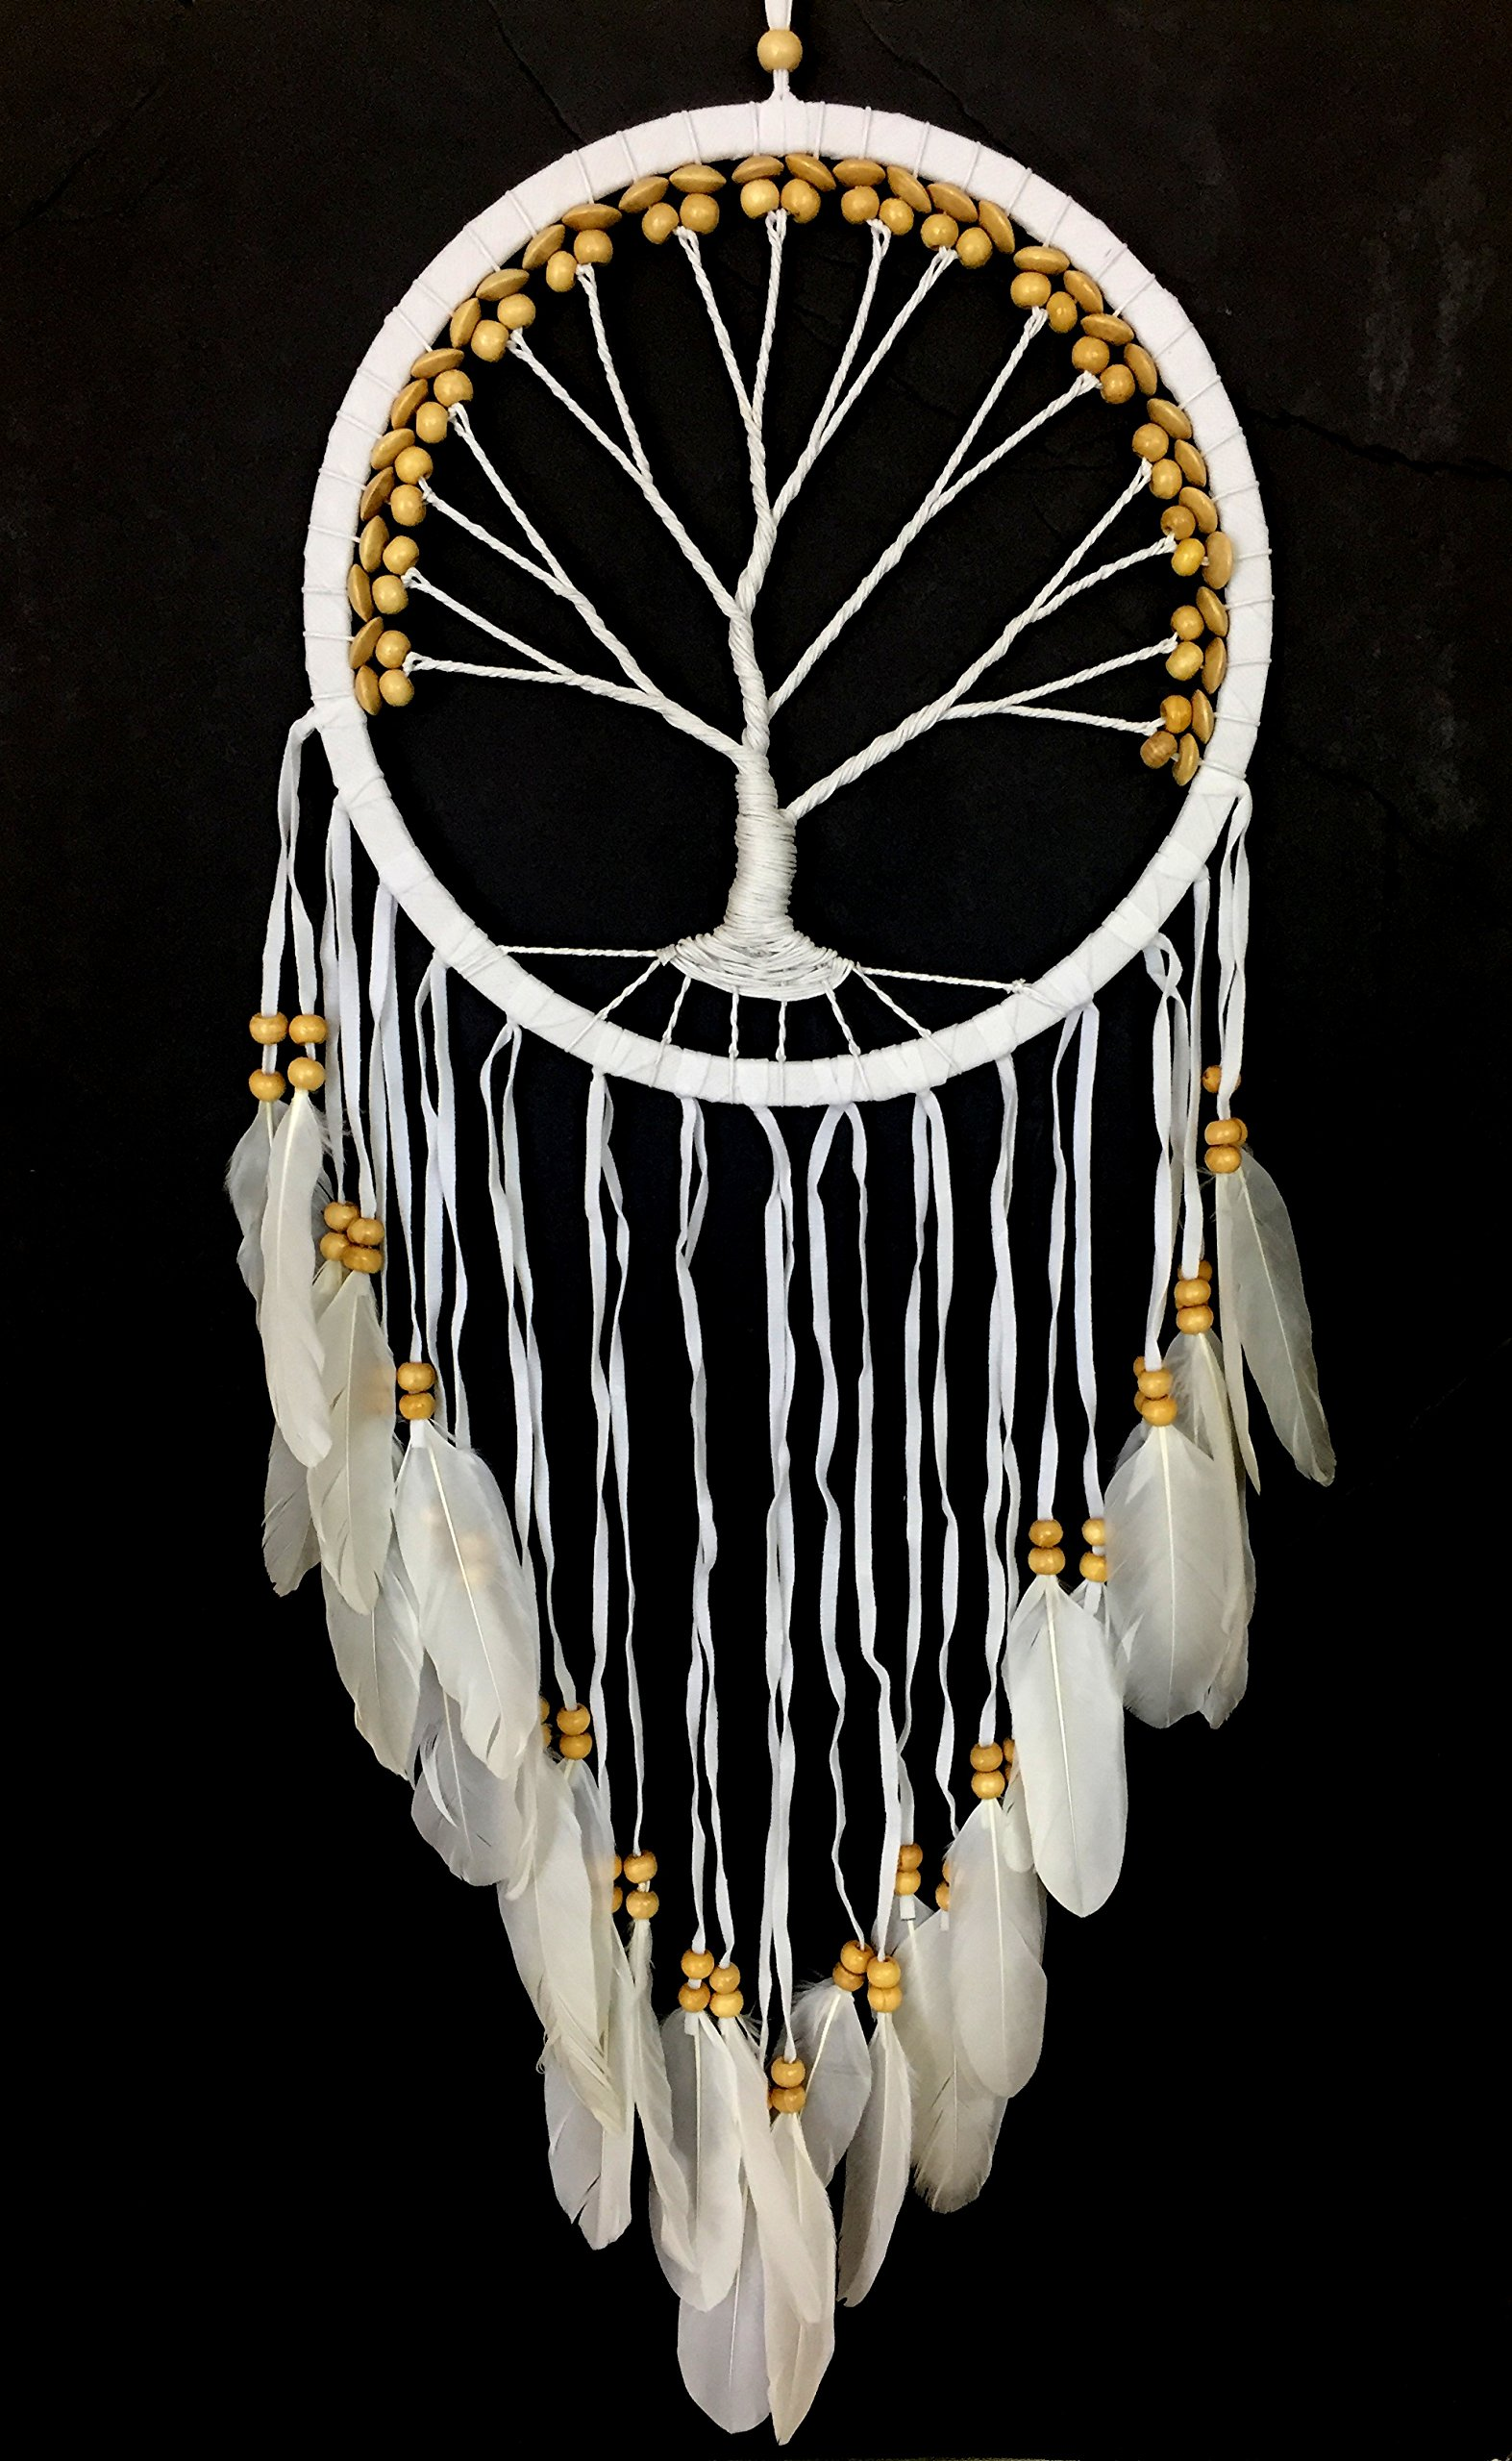 OMA Dream Catcher - TREE OF LIFE White Suede Dreamcatcher With Feathers & Wood Beads - LARGE SIZE - 36'' Long x 11'' Diameter BRAND (Beige)